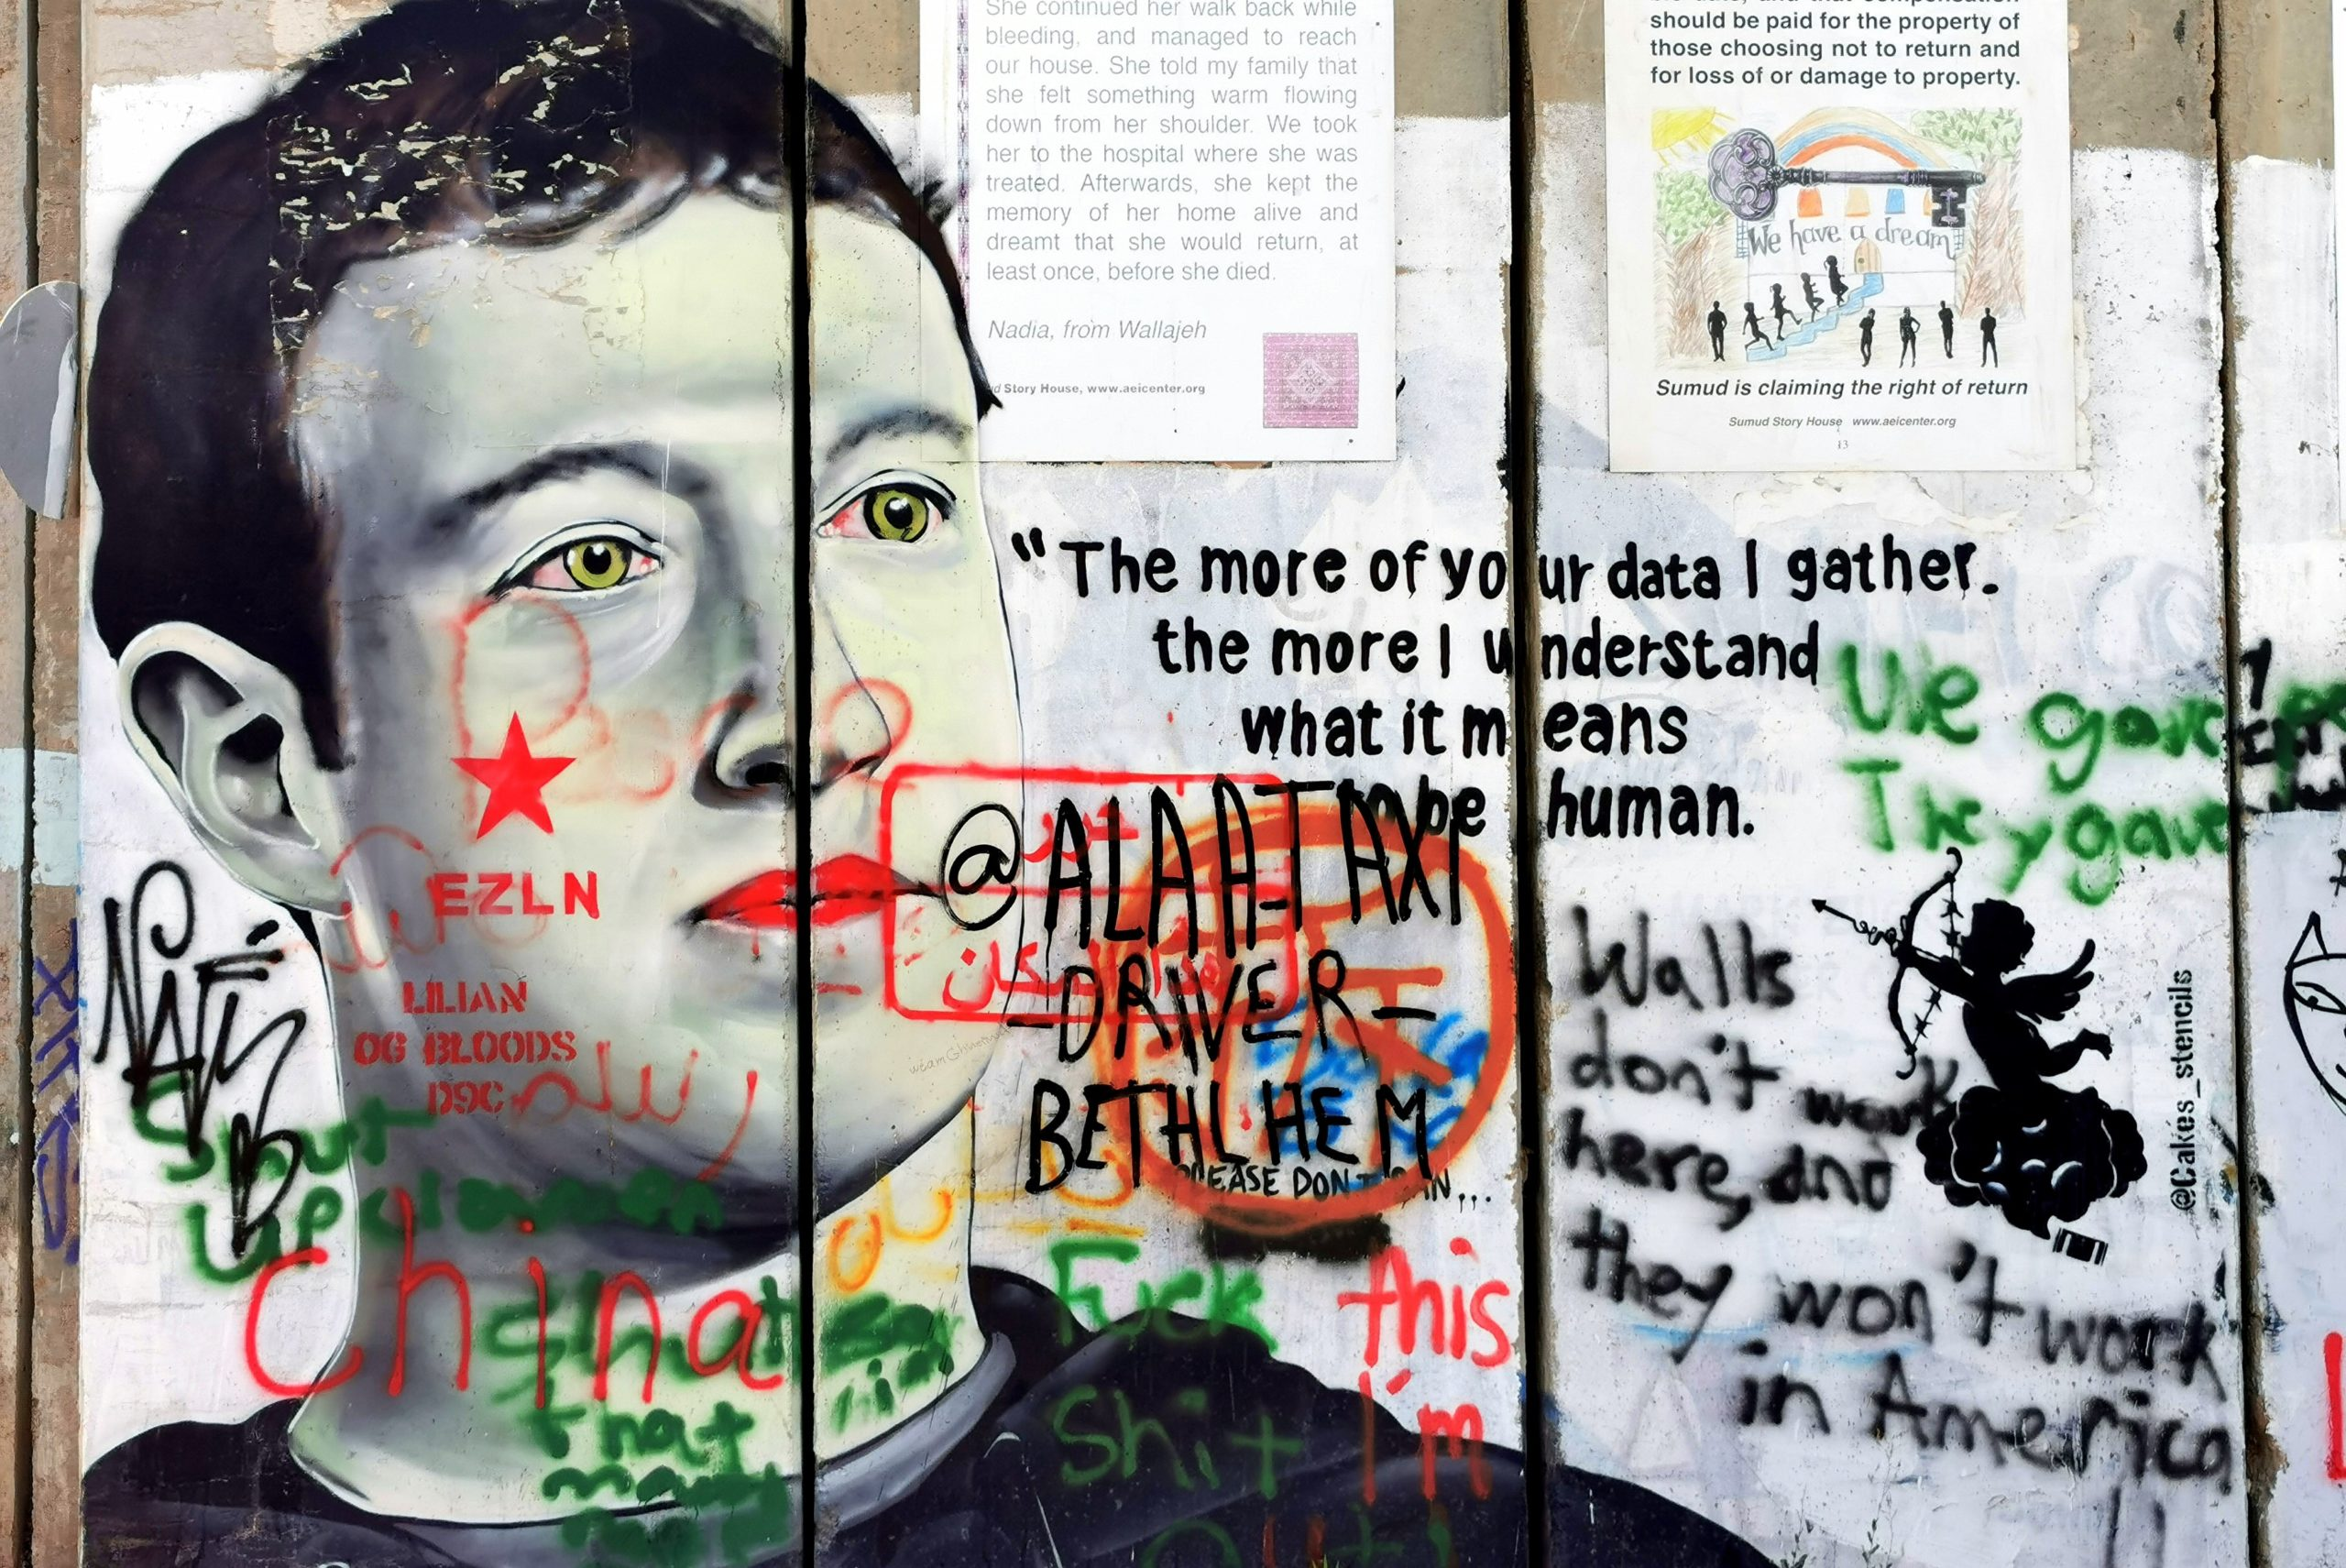 Mark Zuckerberg graffiti